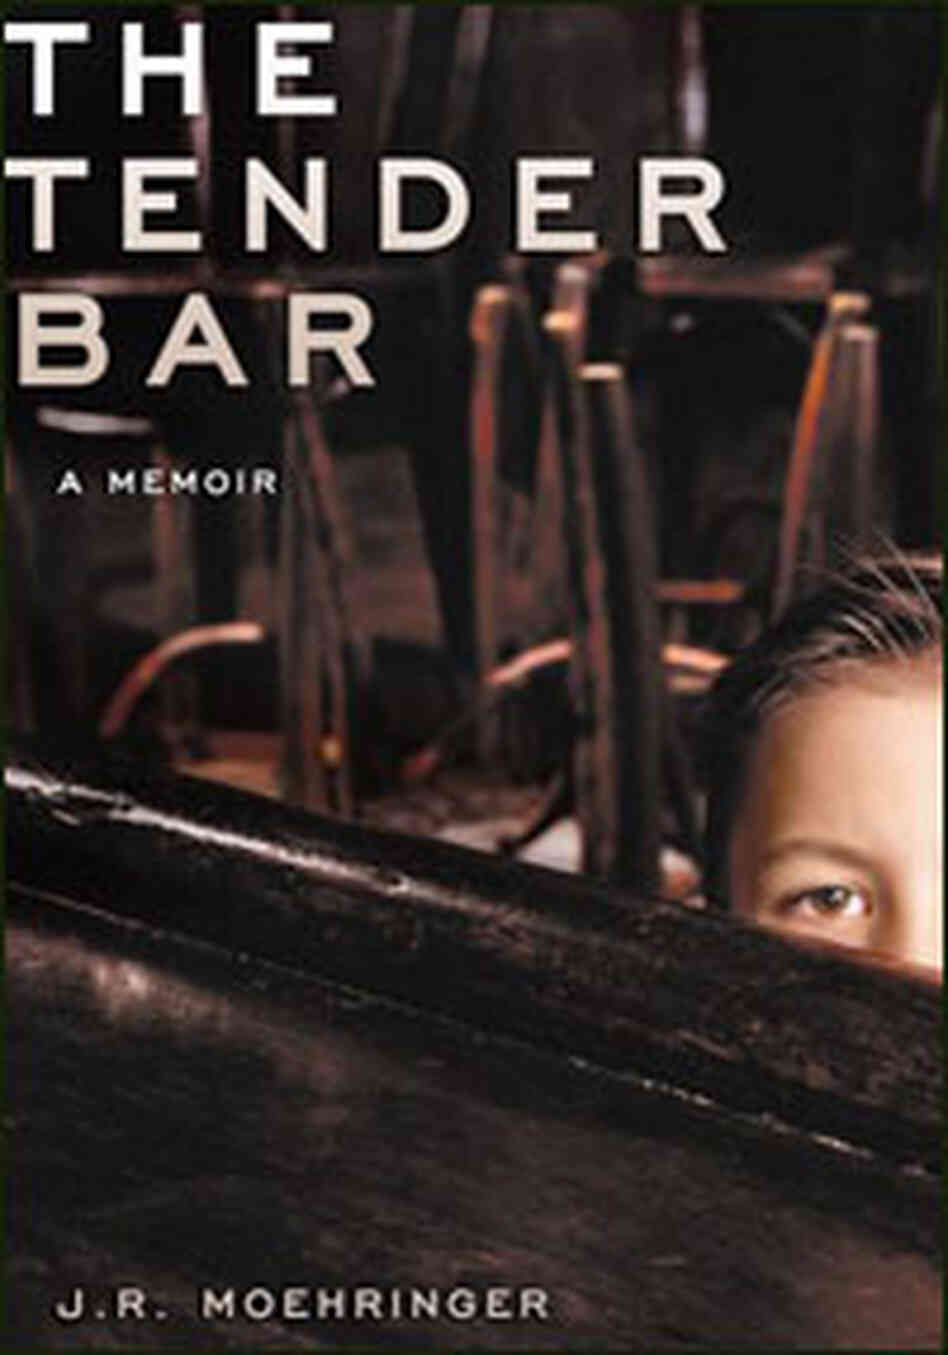 Cover from J.R. Moehringer's memoir, The Tender Bar.